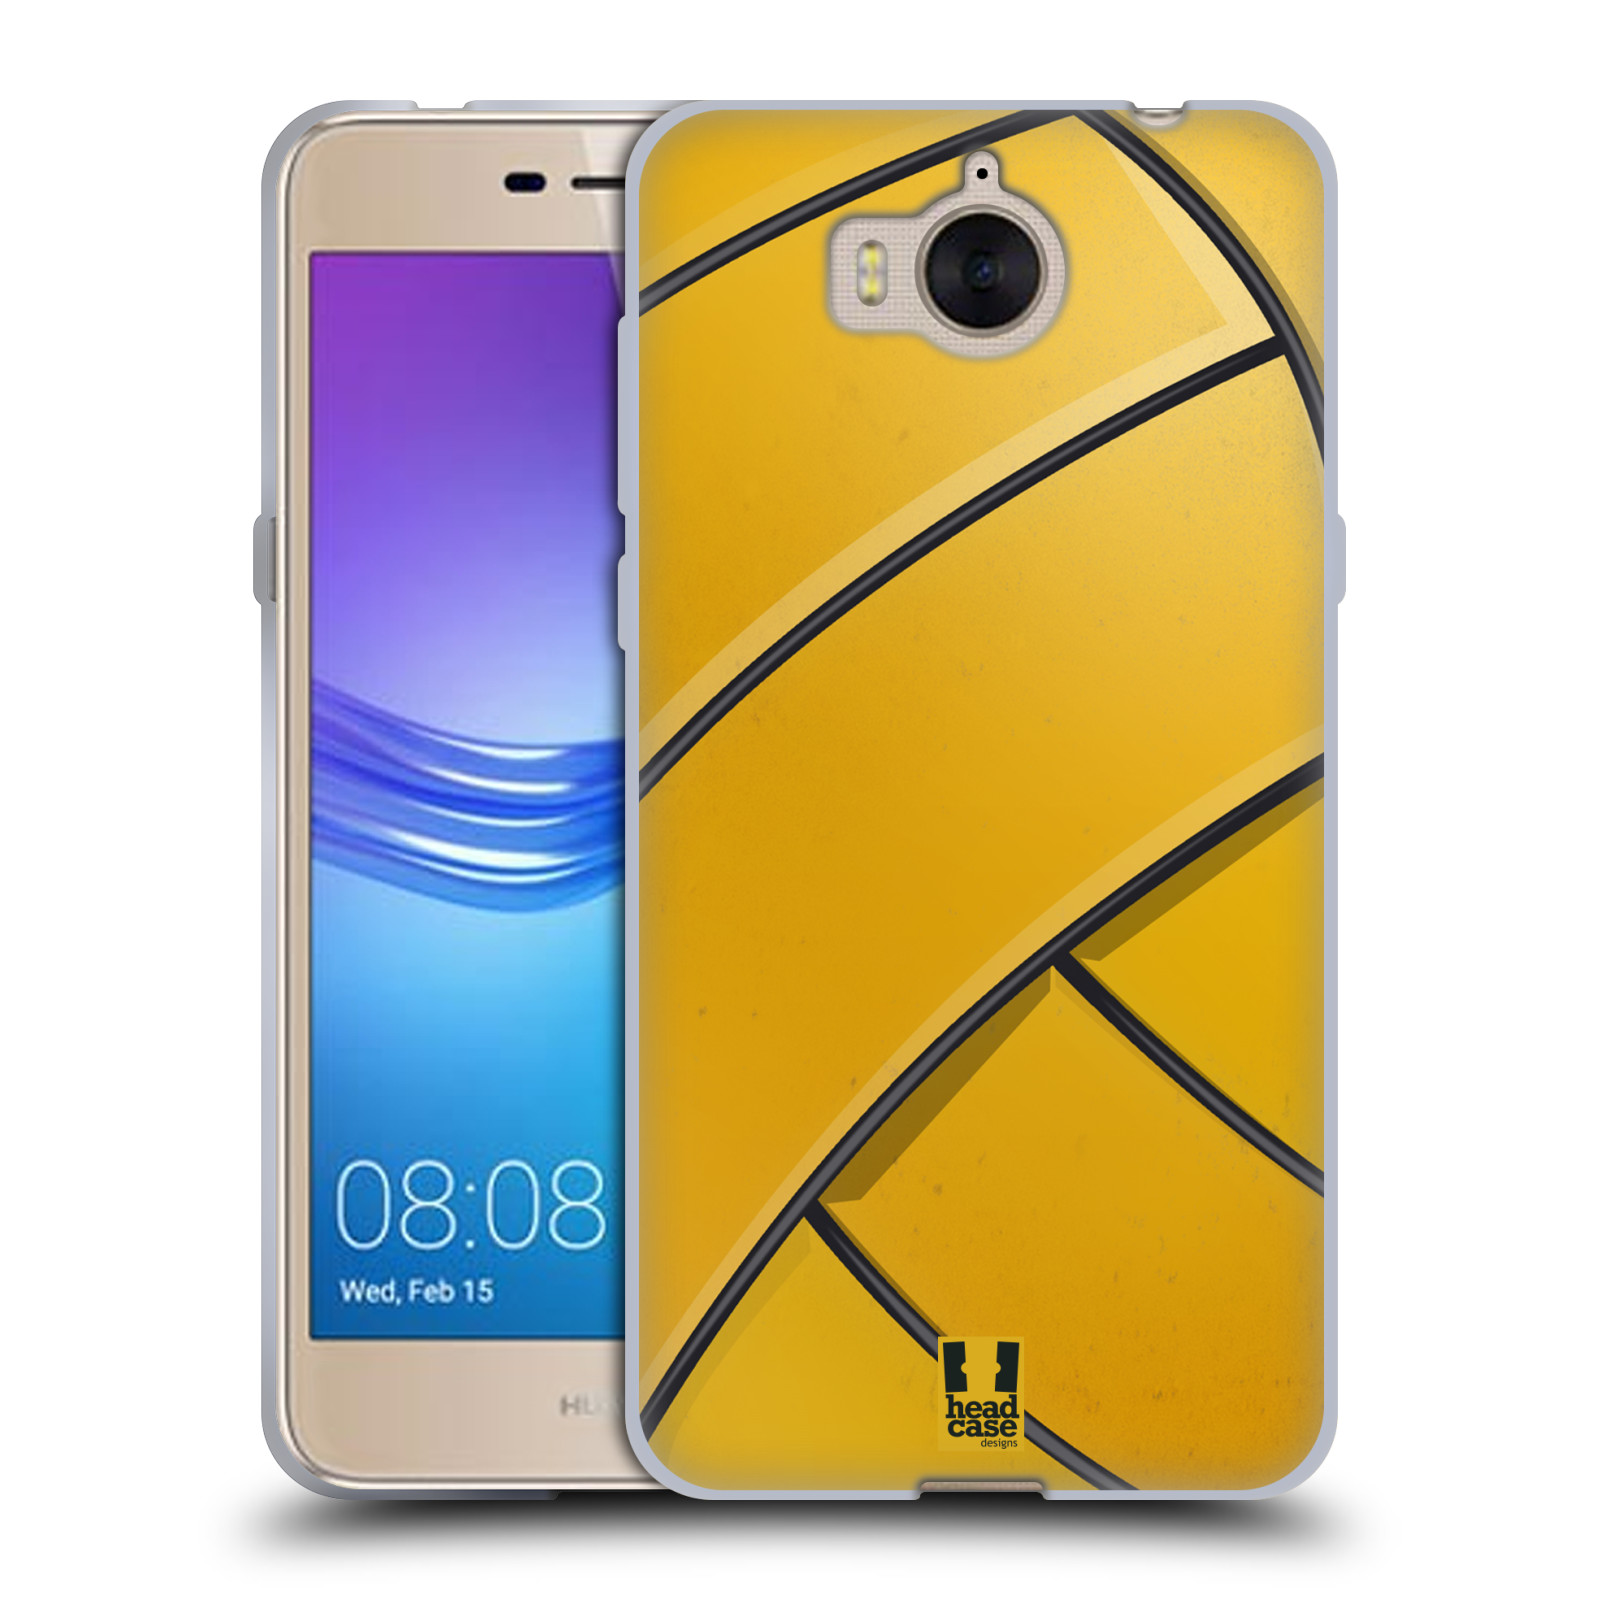 HEAD-CASE-DESIGNS-BALL-COLLECTIONS-2-SOFT-GEL-CASE-FOR-HUAWEI-Y5-2017